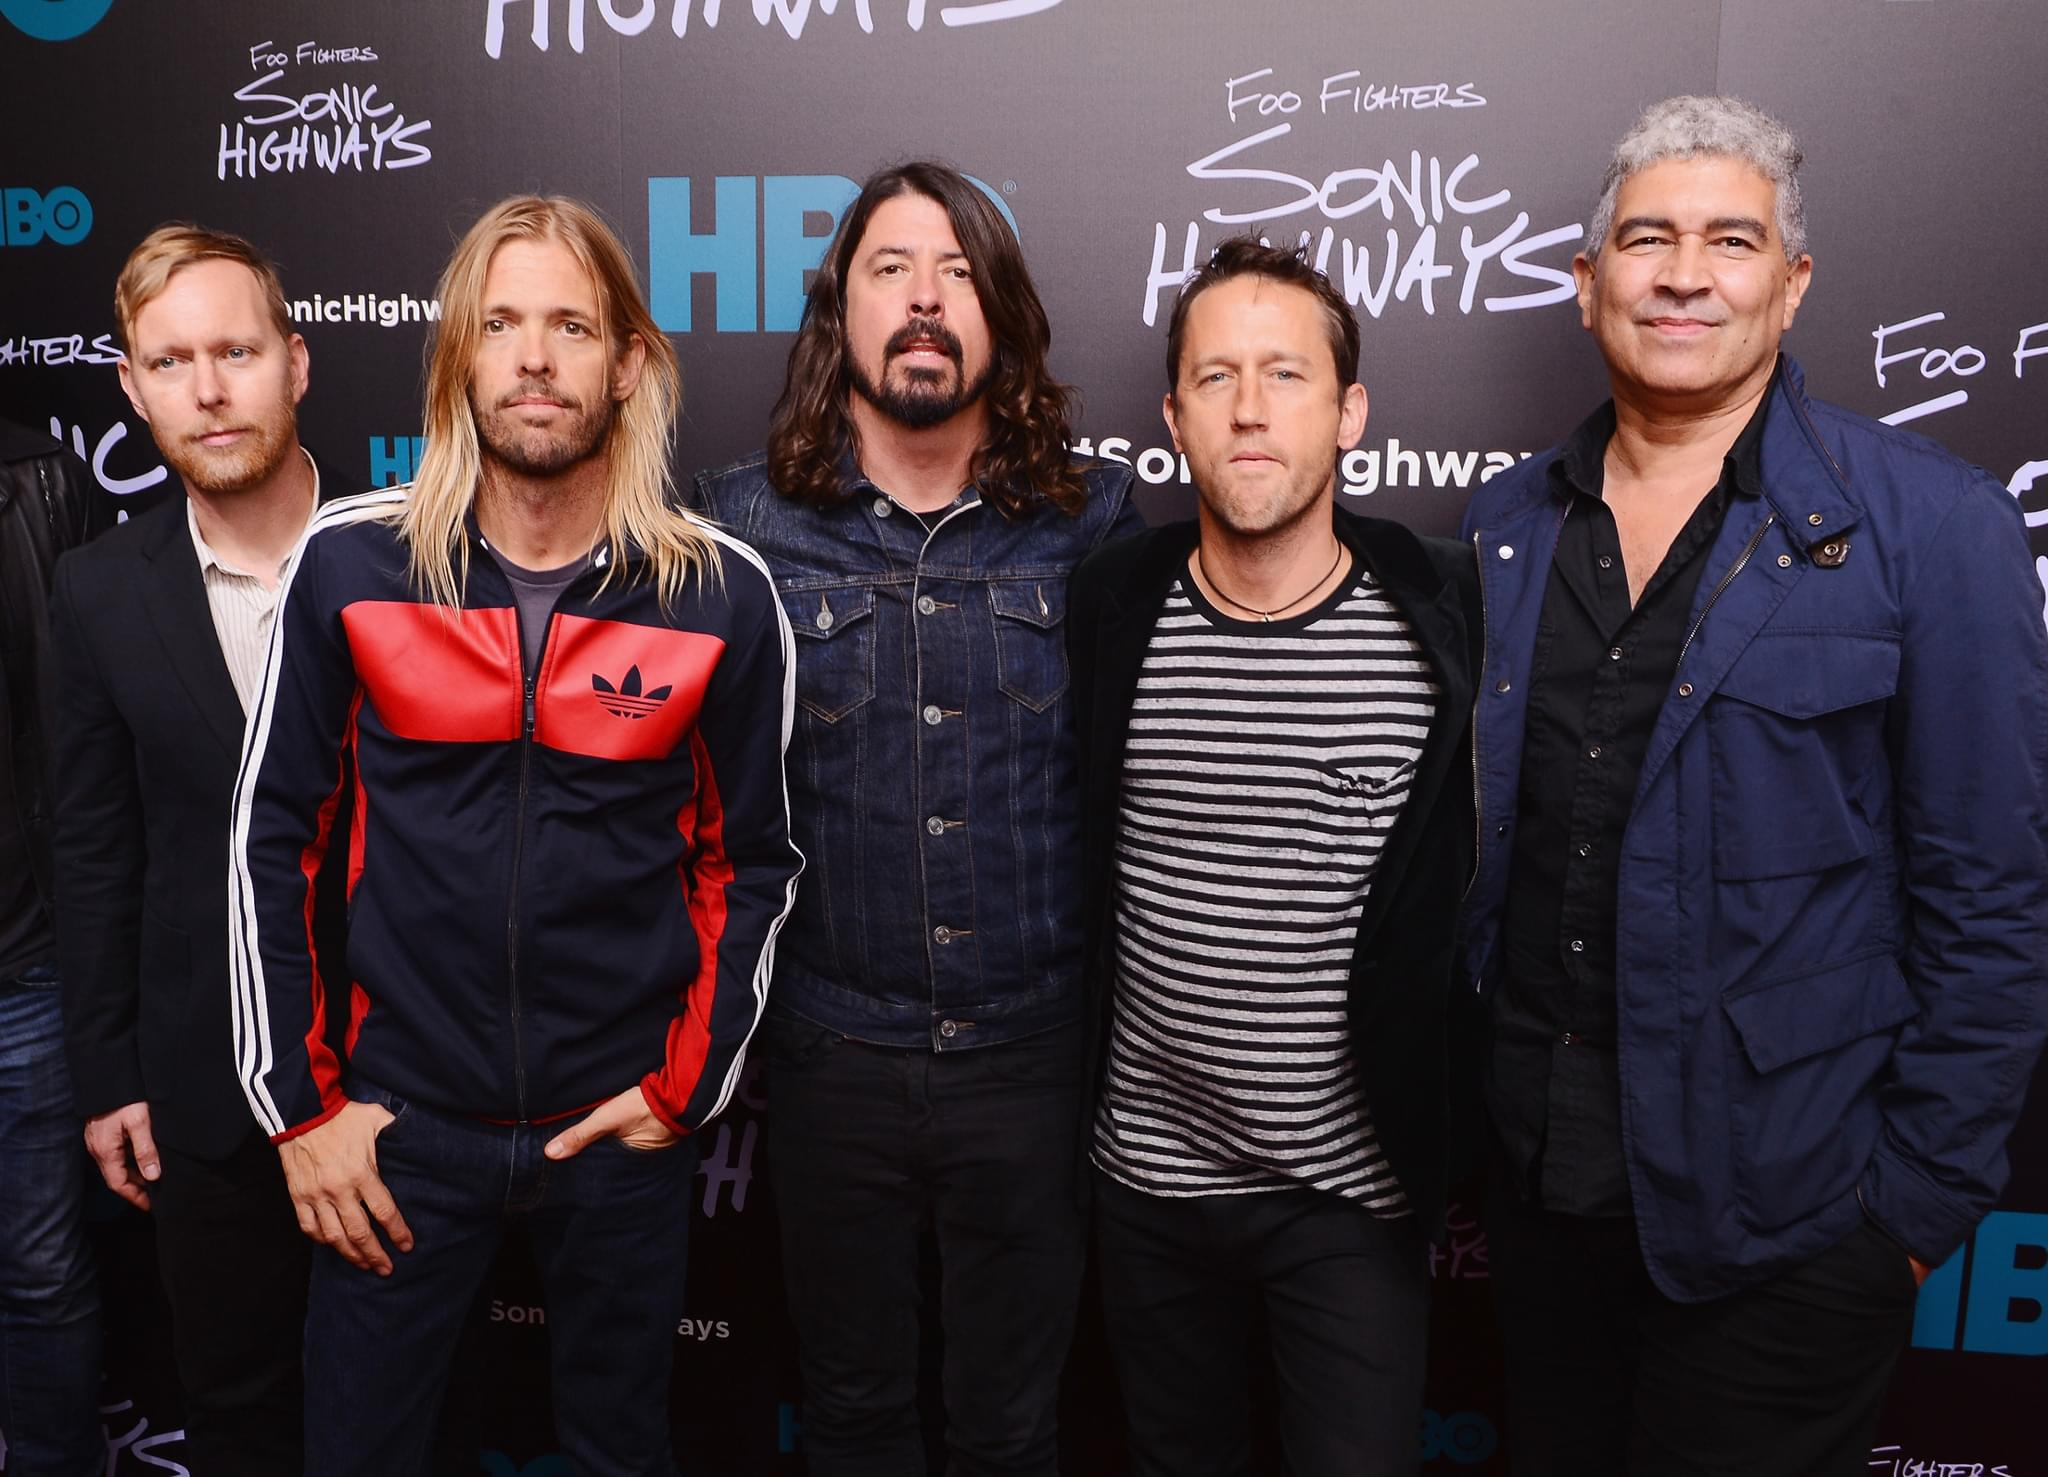 The 7th Surprise Foo Fighters E.P. Has Dropped